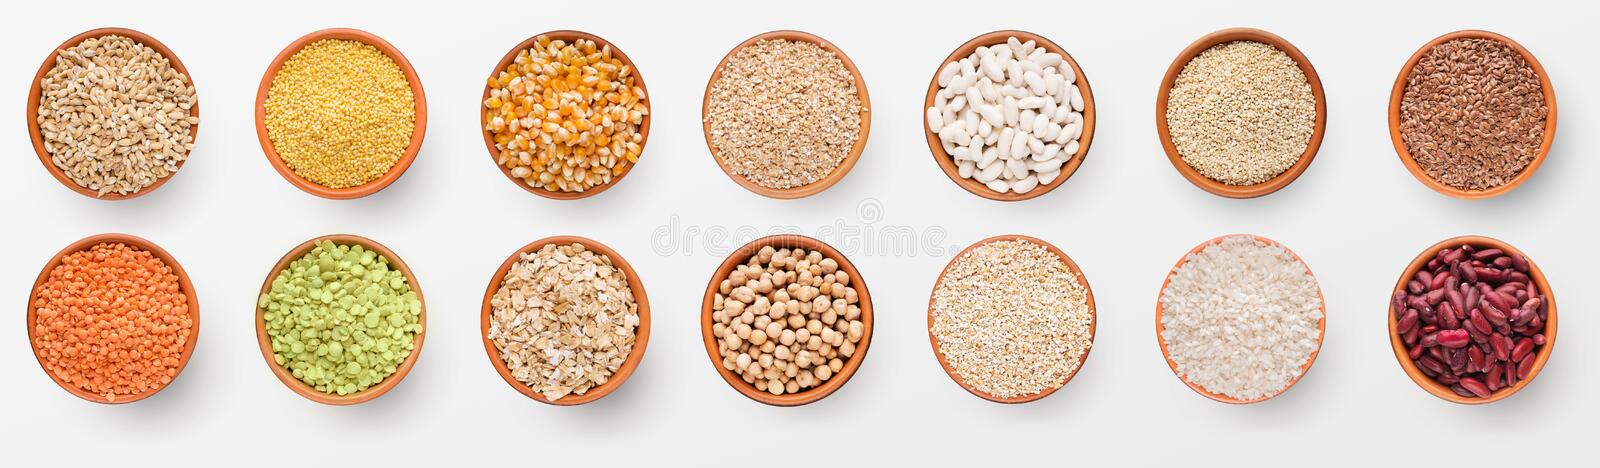 Healthy collection of various grains and beans in bowls royalty free stock photography